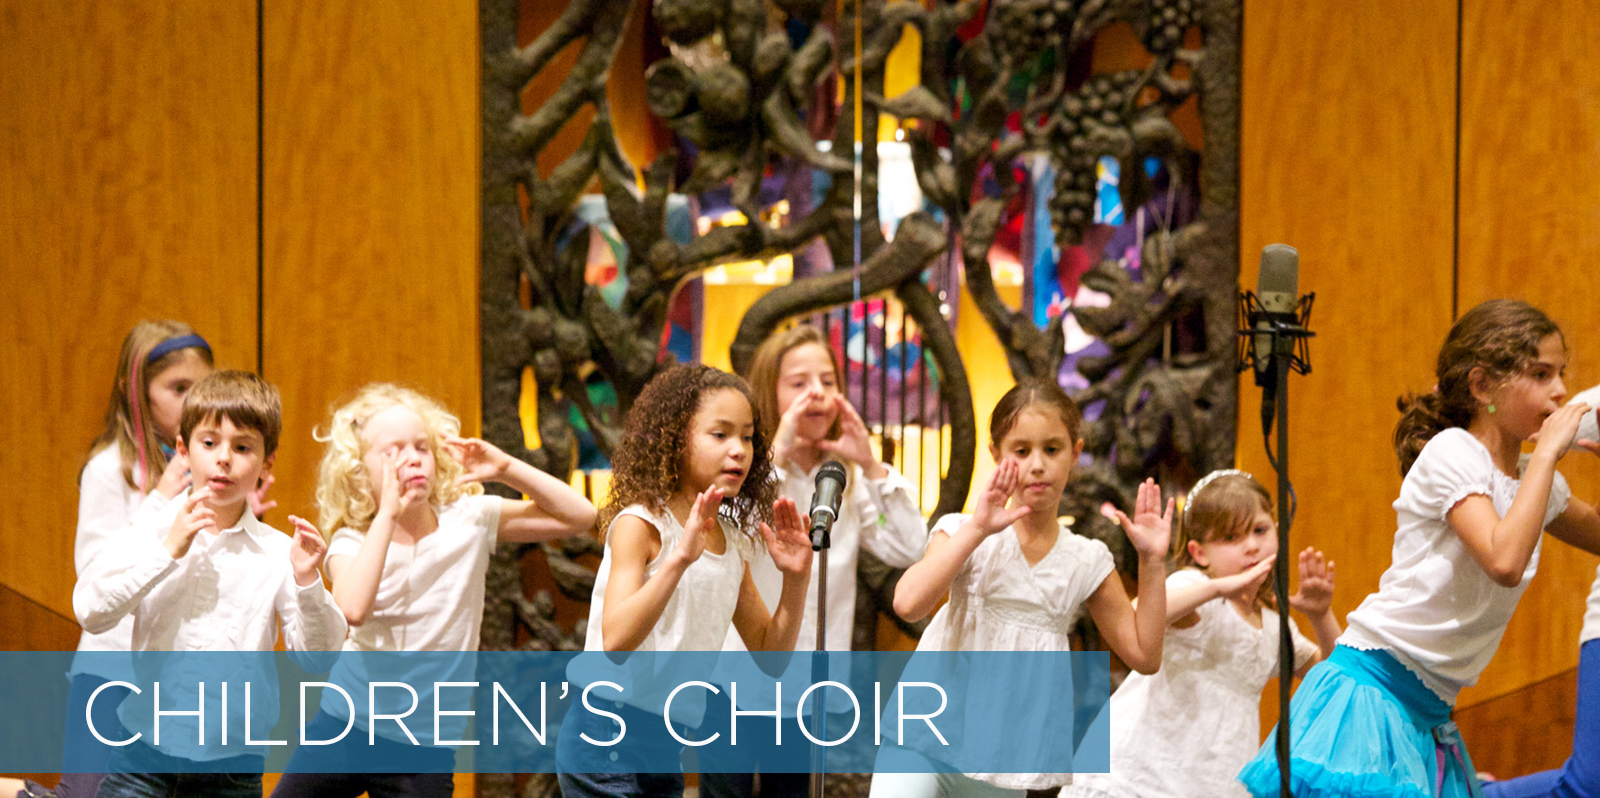 /home/templeis/public_html/images/header_image/1525220038header_image1453251817header_imagechildrens choir.jpg.